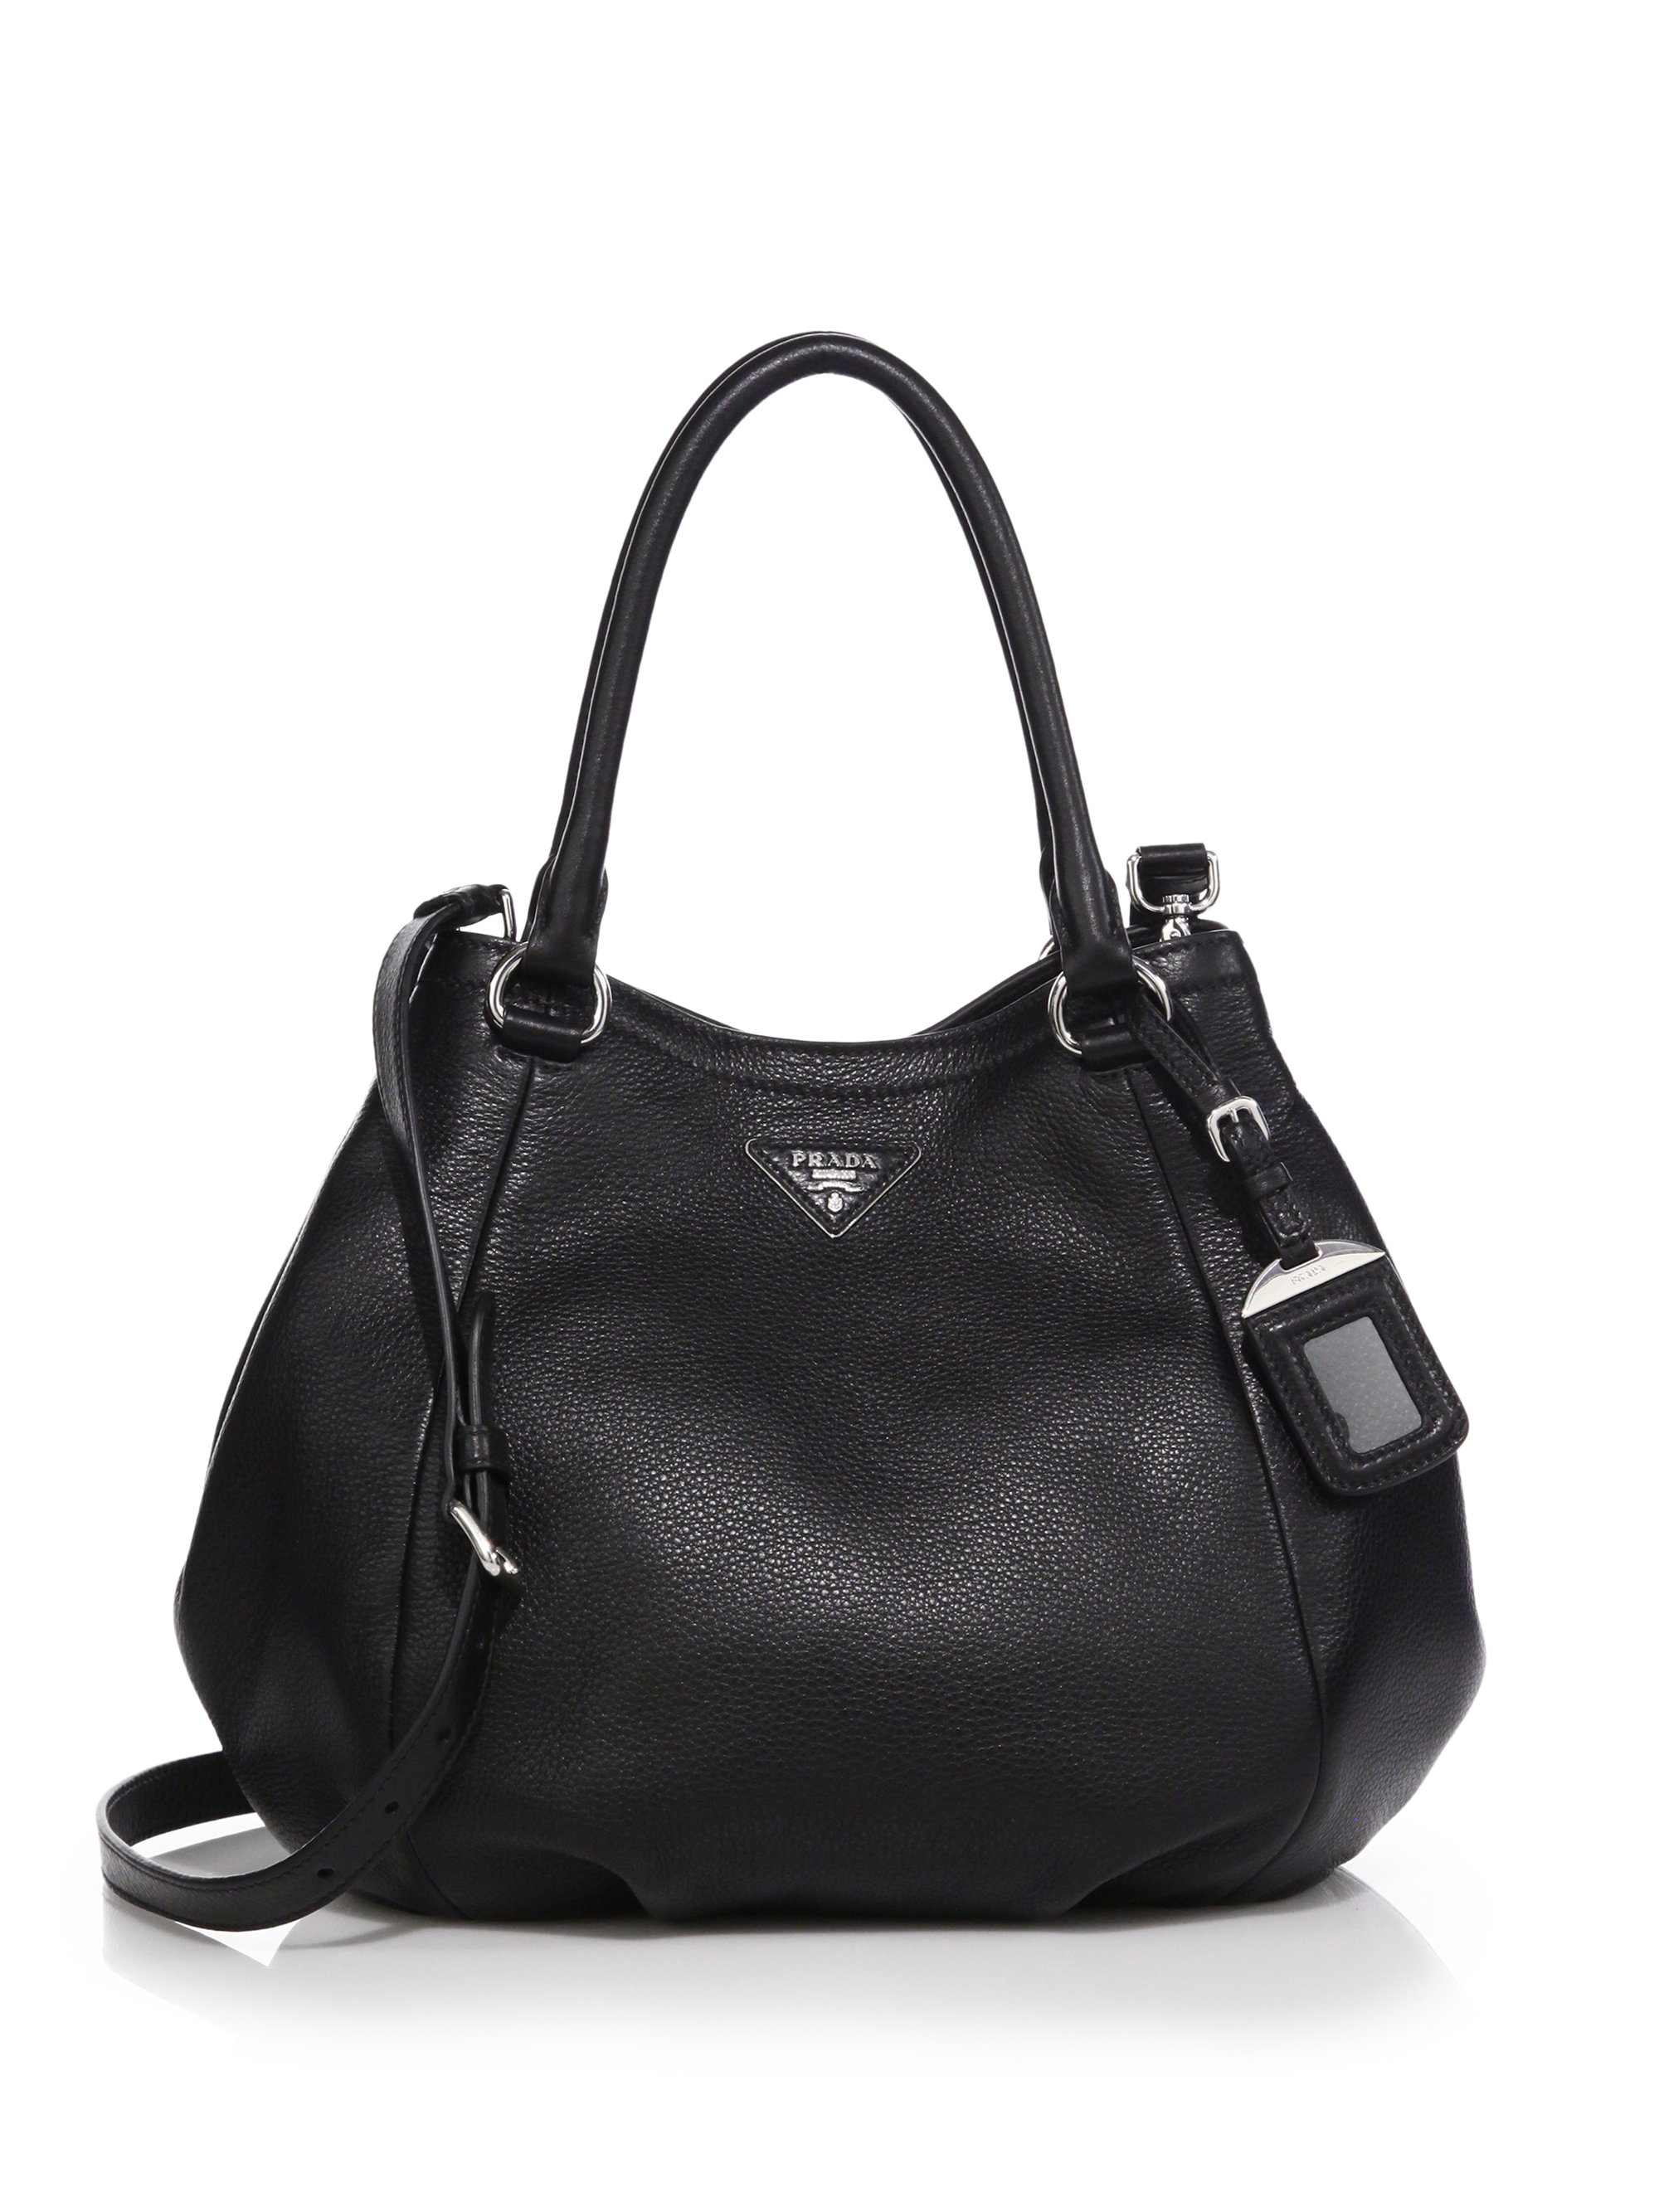 9bc023897c9c Prada Daino Leather Satchel in Black - Lyst